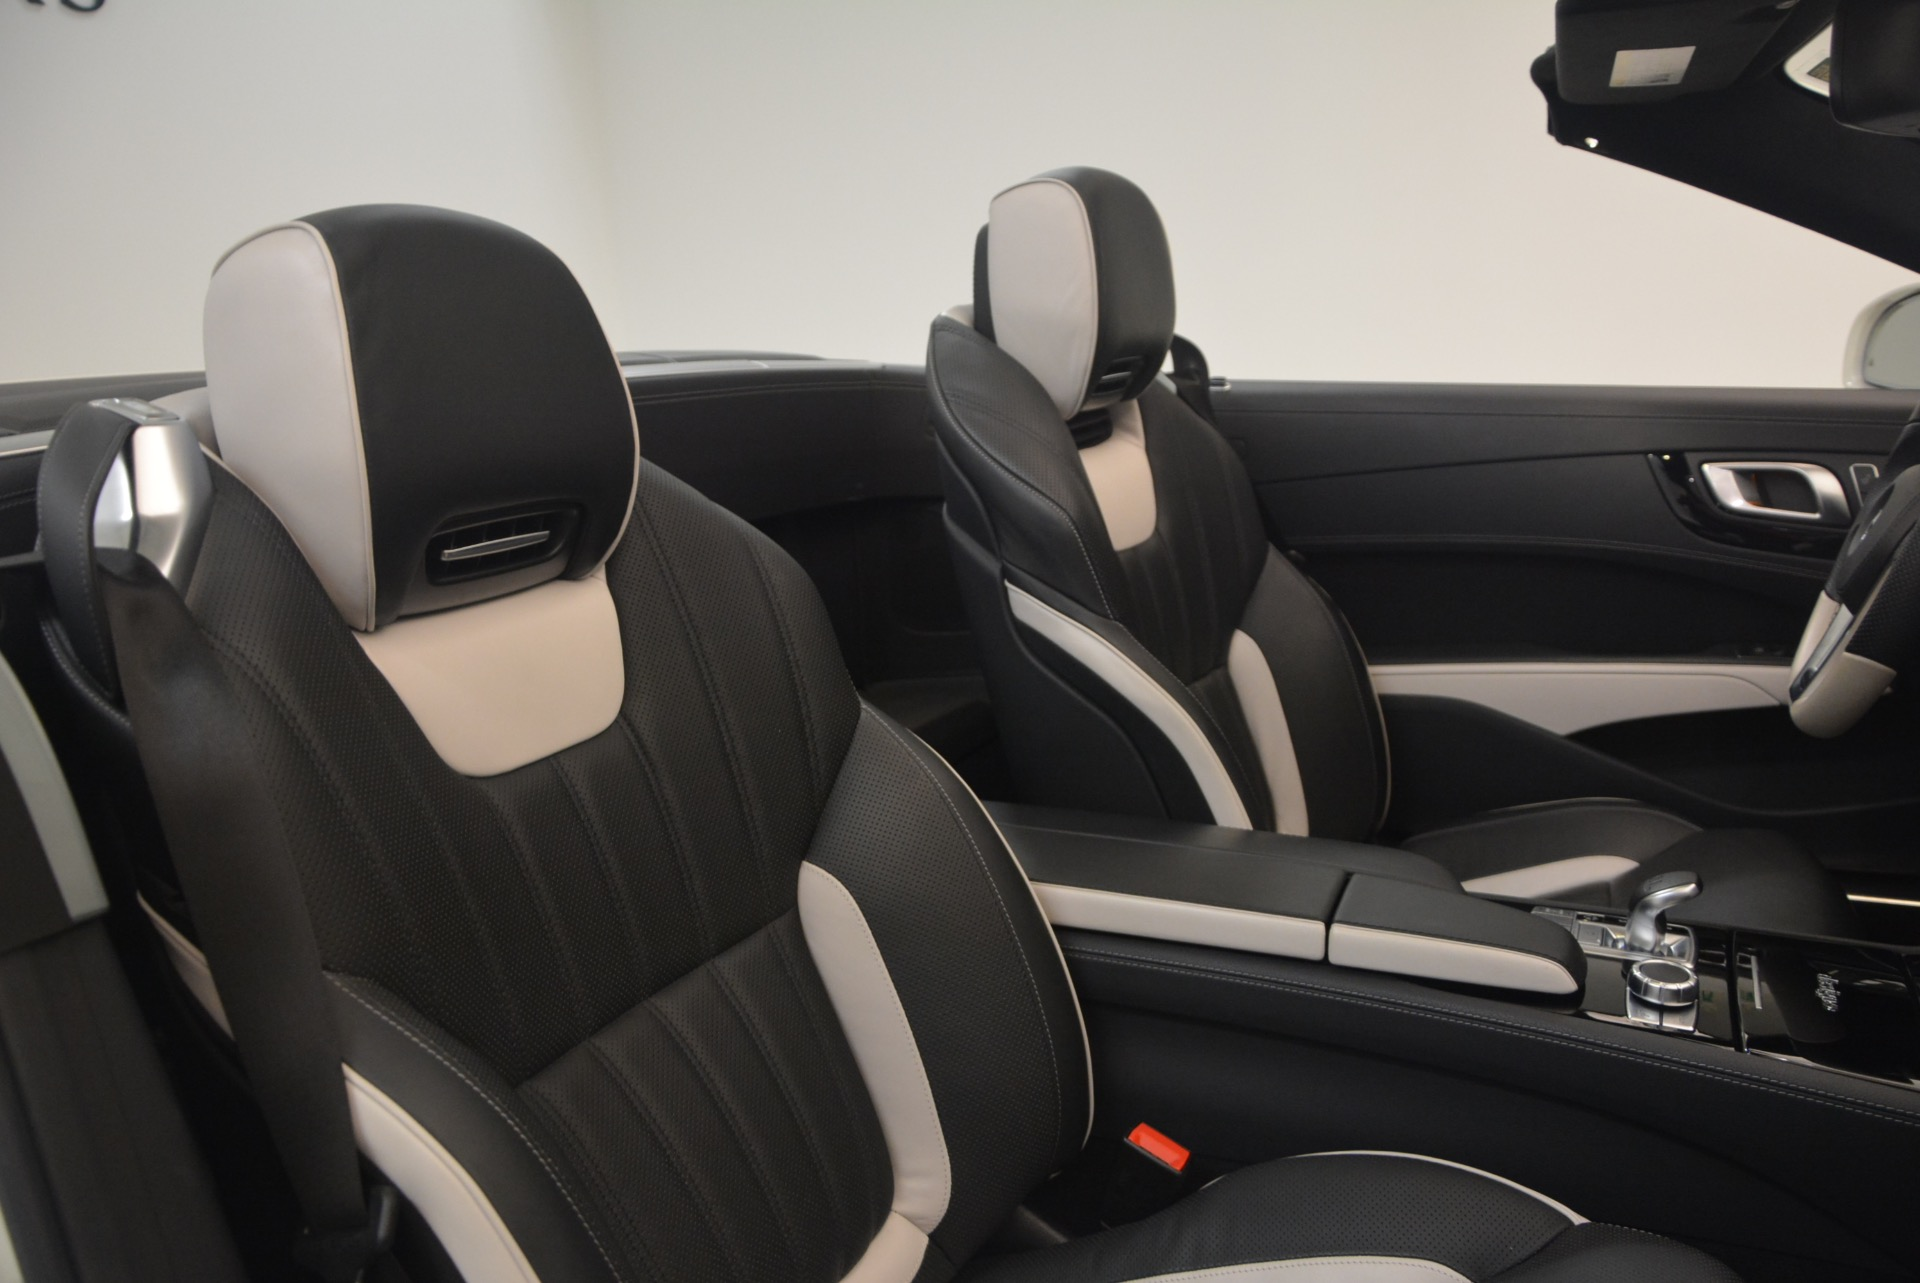 Used 2015 Mercedes Benz SL-Class SL 550 For Sale In Westport, CT 1261_p44